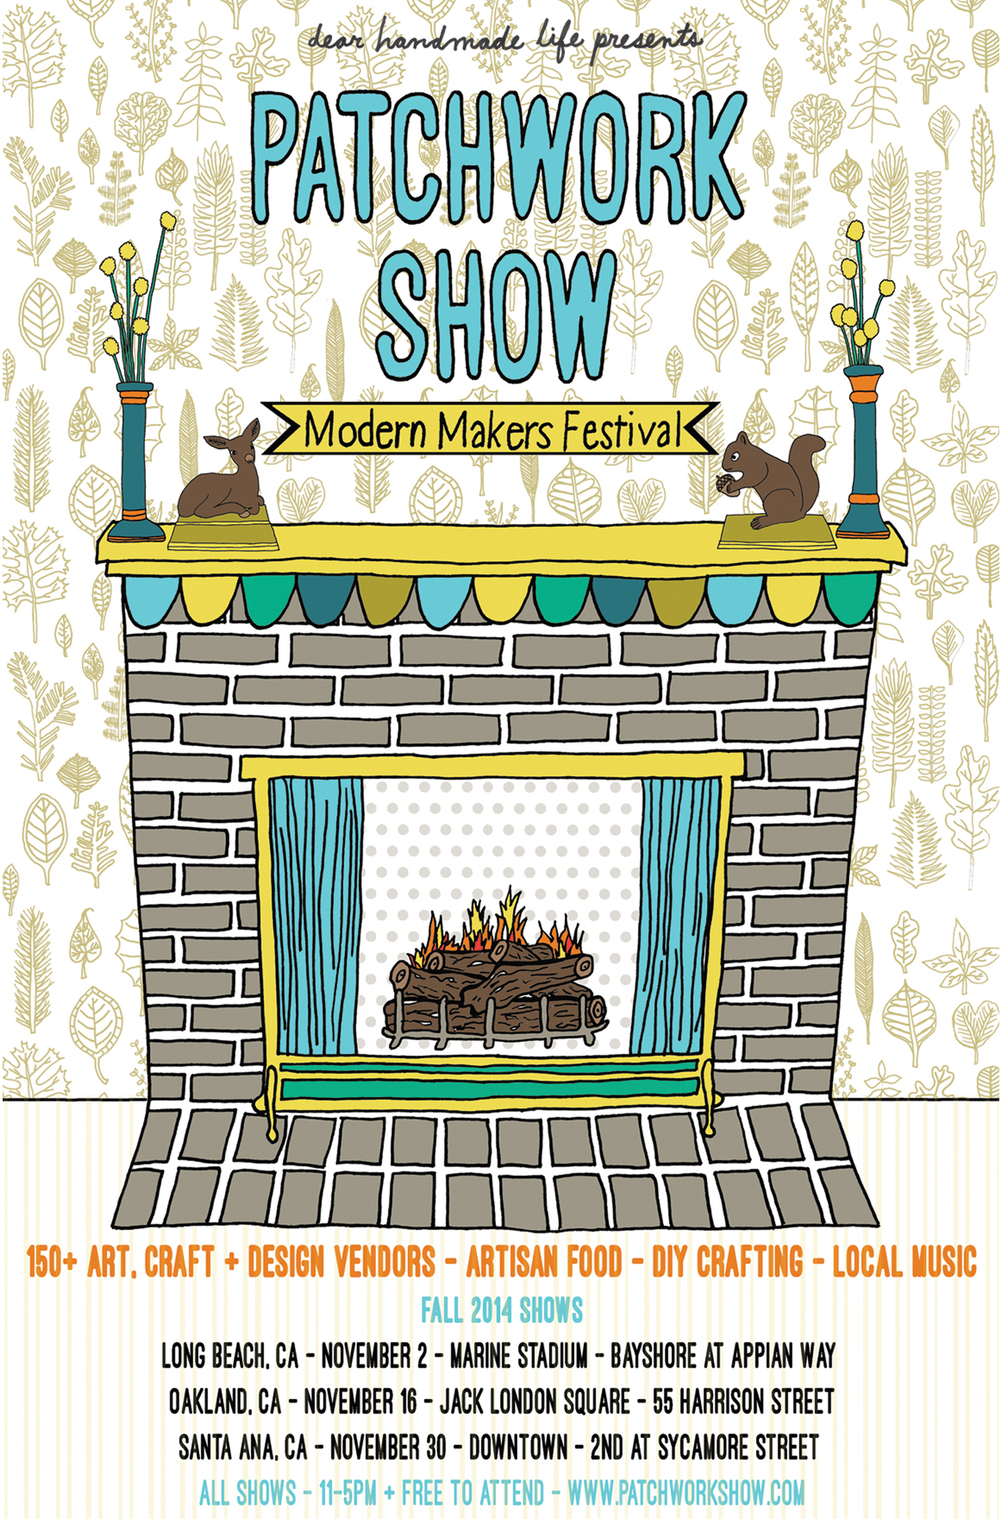 fireplace deer winter patchwork show indie craft show fair illustration design poster postcard nicole stevenson studio.jpg